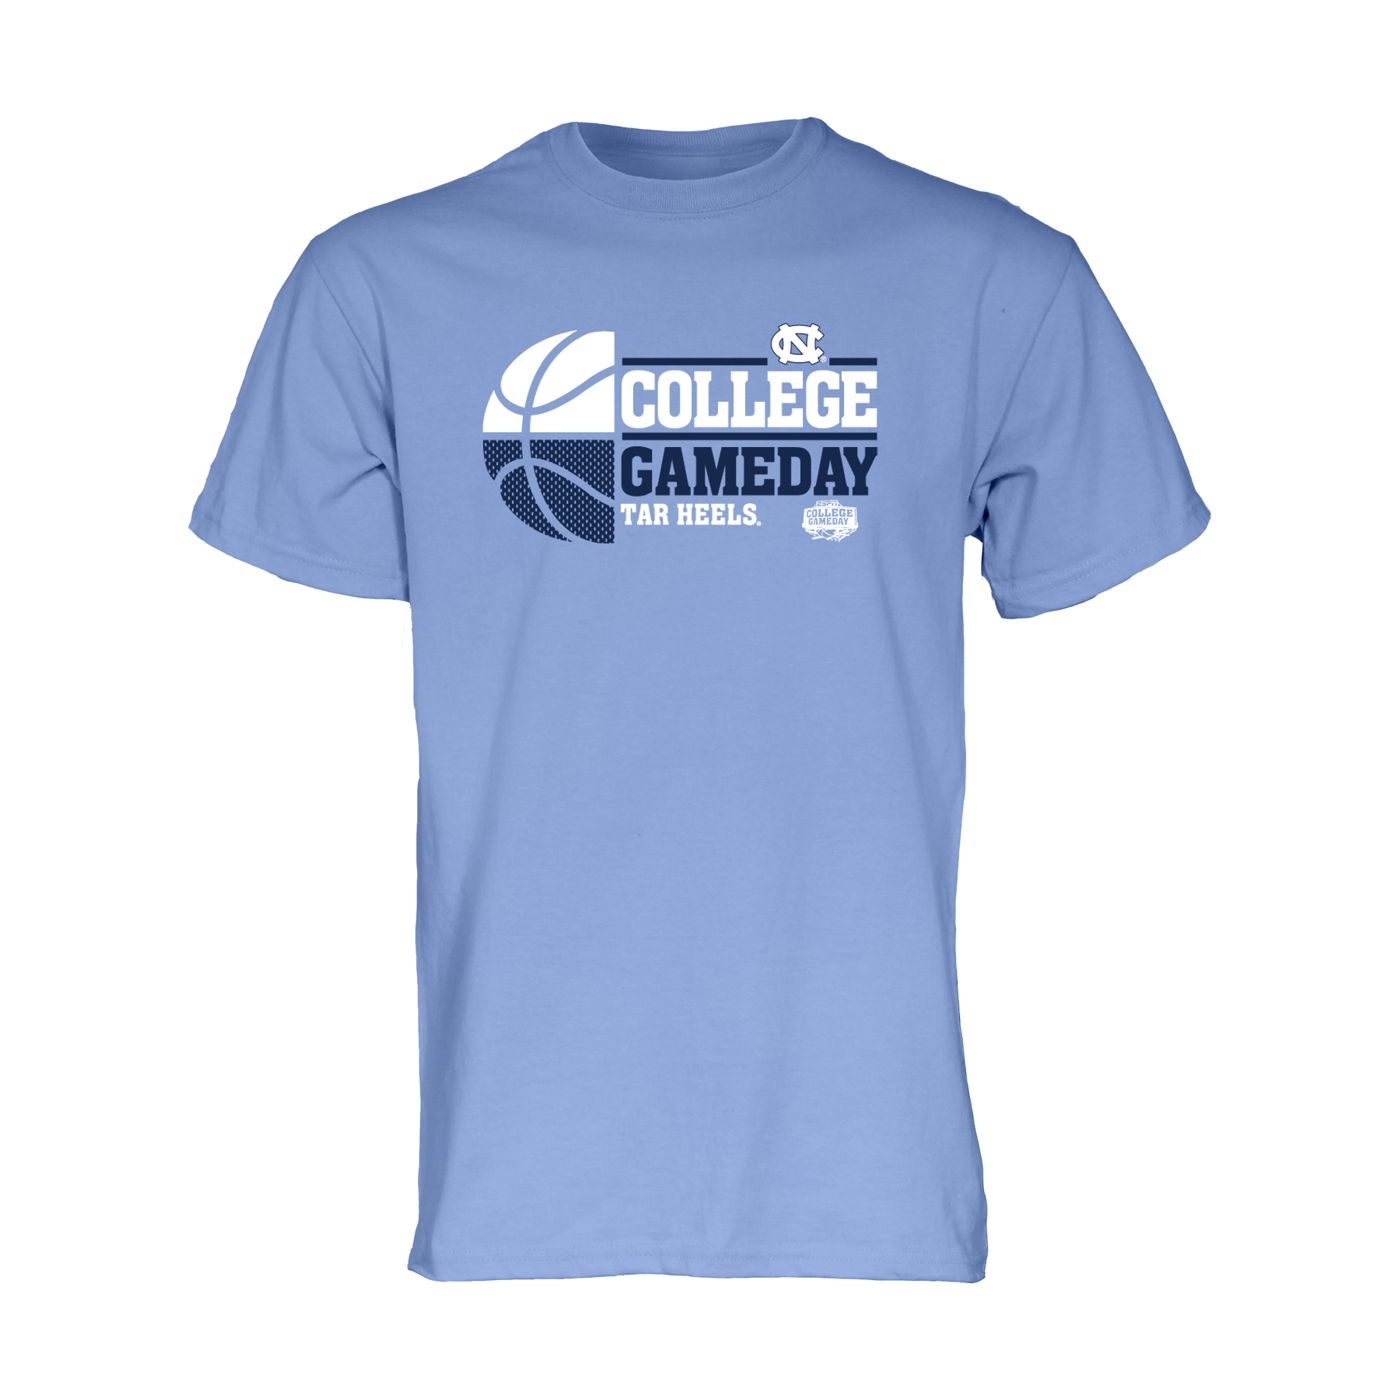 Basketball T shirts johnny t-shirt - north carolina tar heels - espn college gameday basketball  t (cb) YPGYNBA